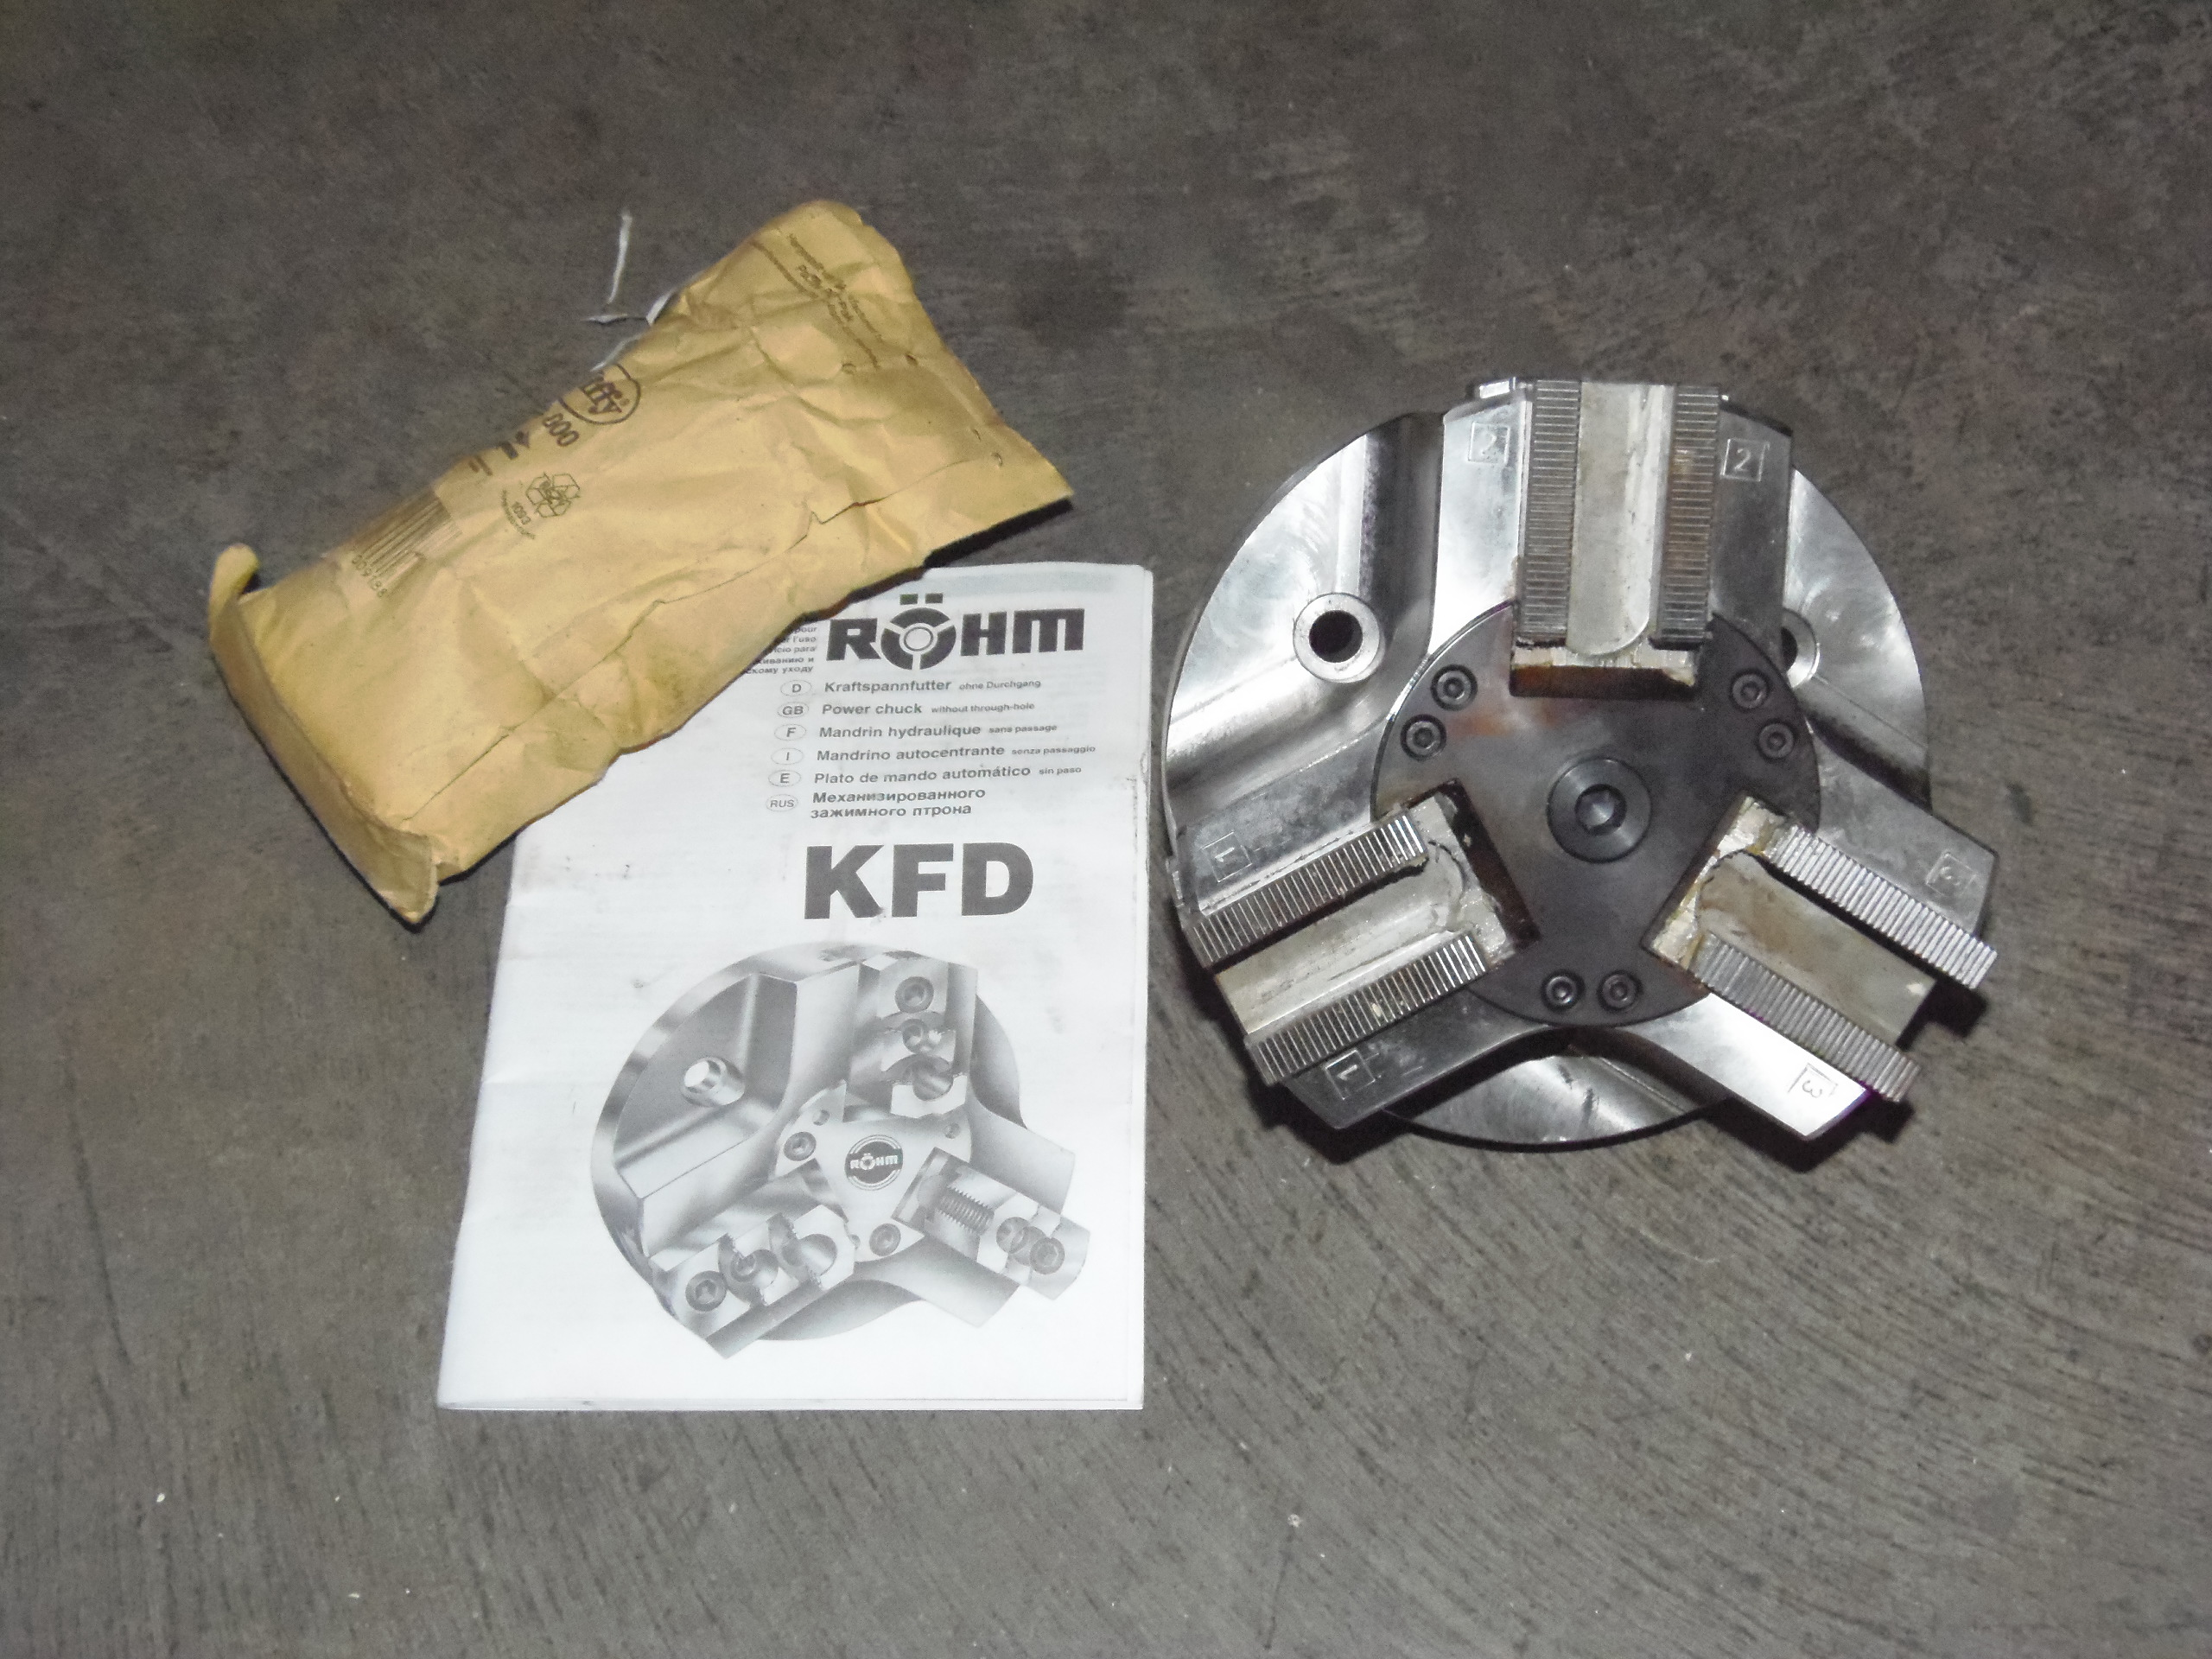 "6.5"" UNUSED ROHM, KFD, ITEM 46730, 3 JAW POWER CHUCK"